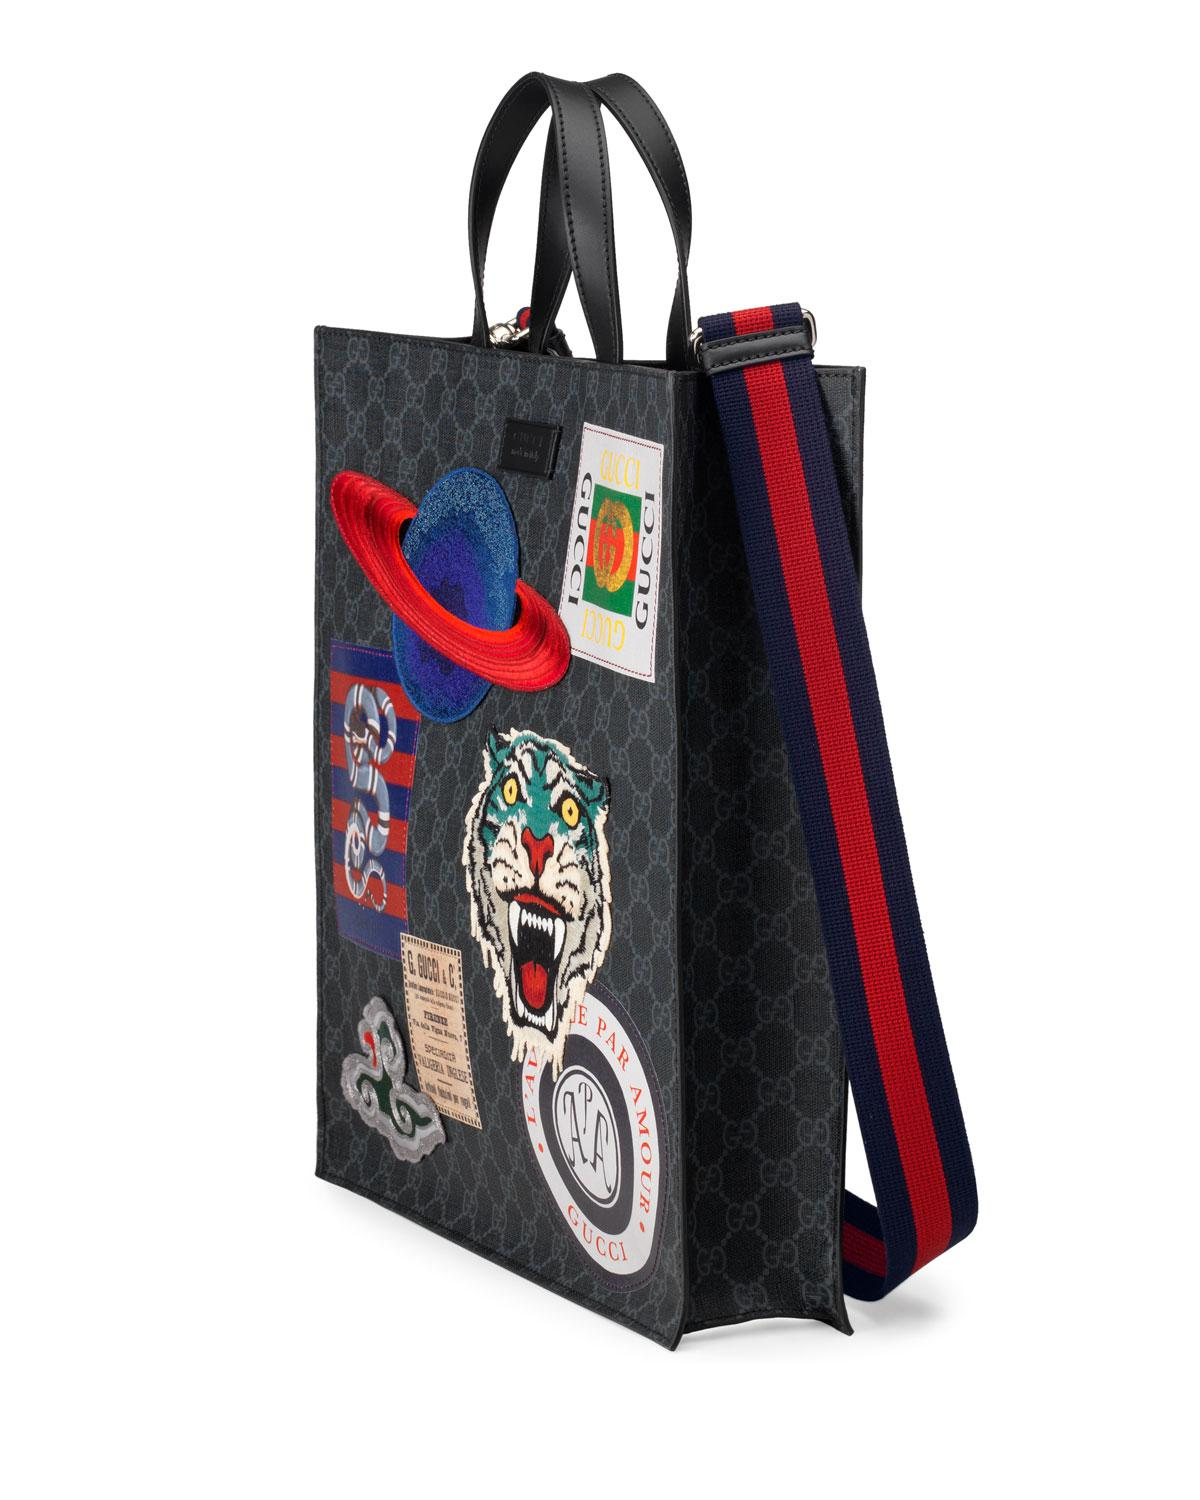 8239165d5254 Gucci Men's GG Supreme Tote Bag With Patches in Black - Lyst